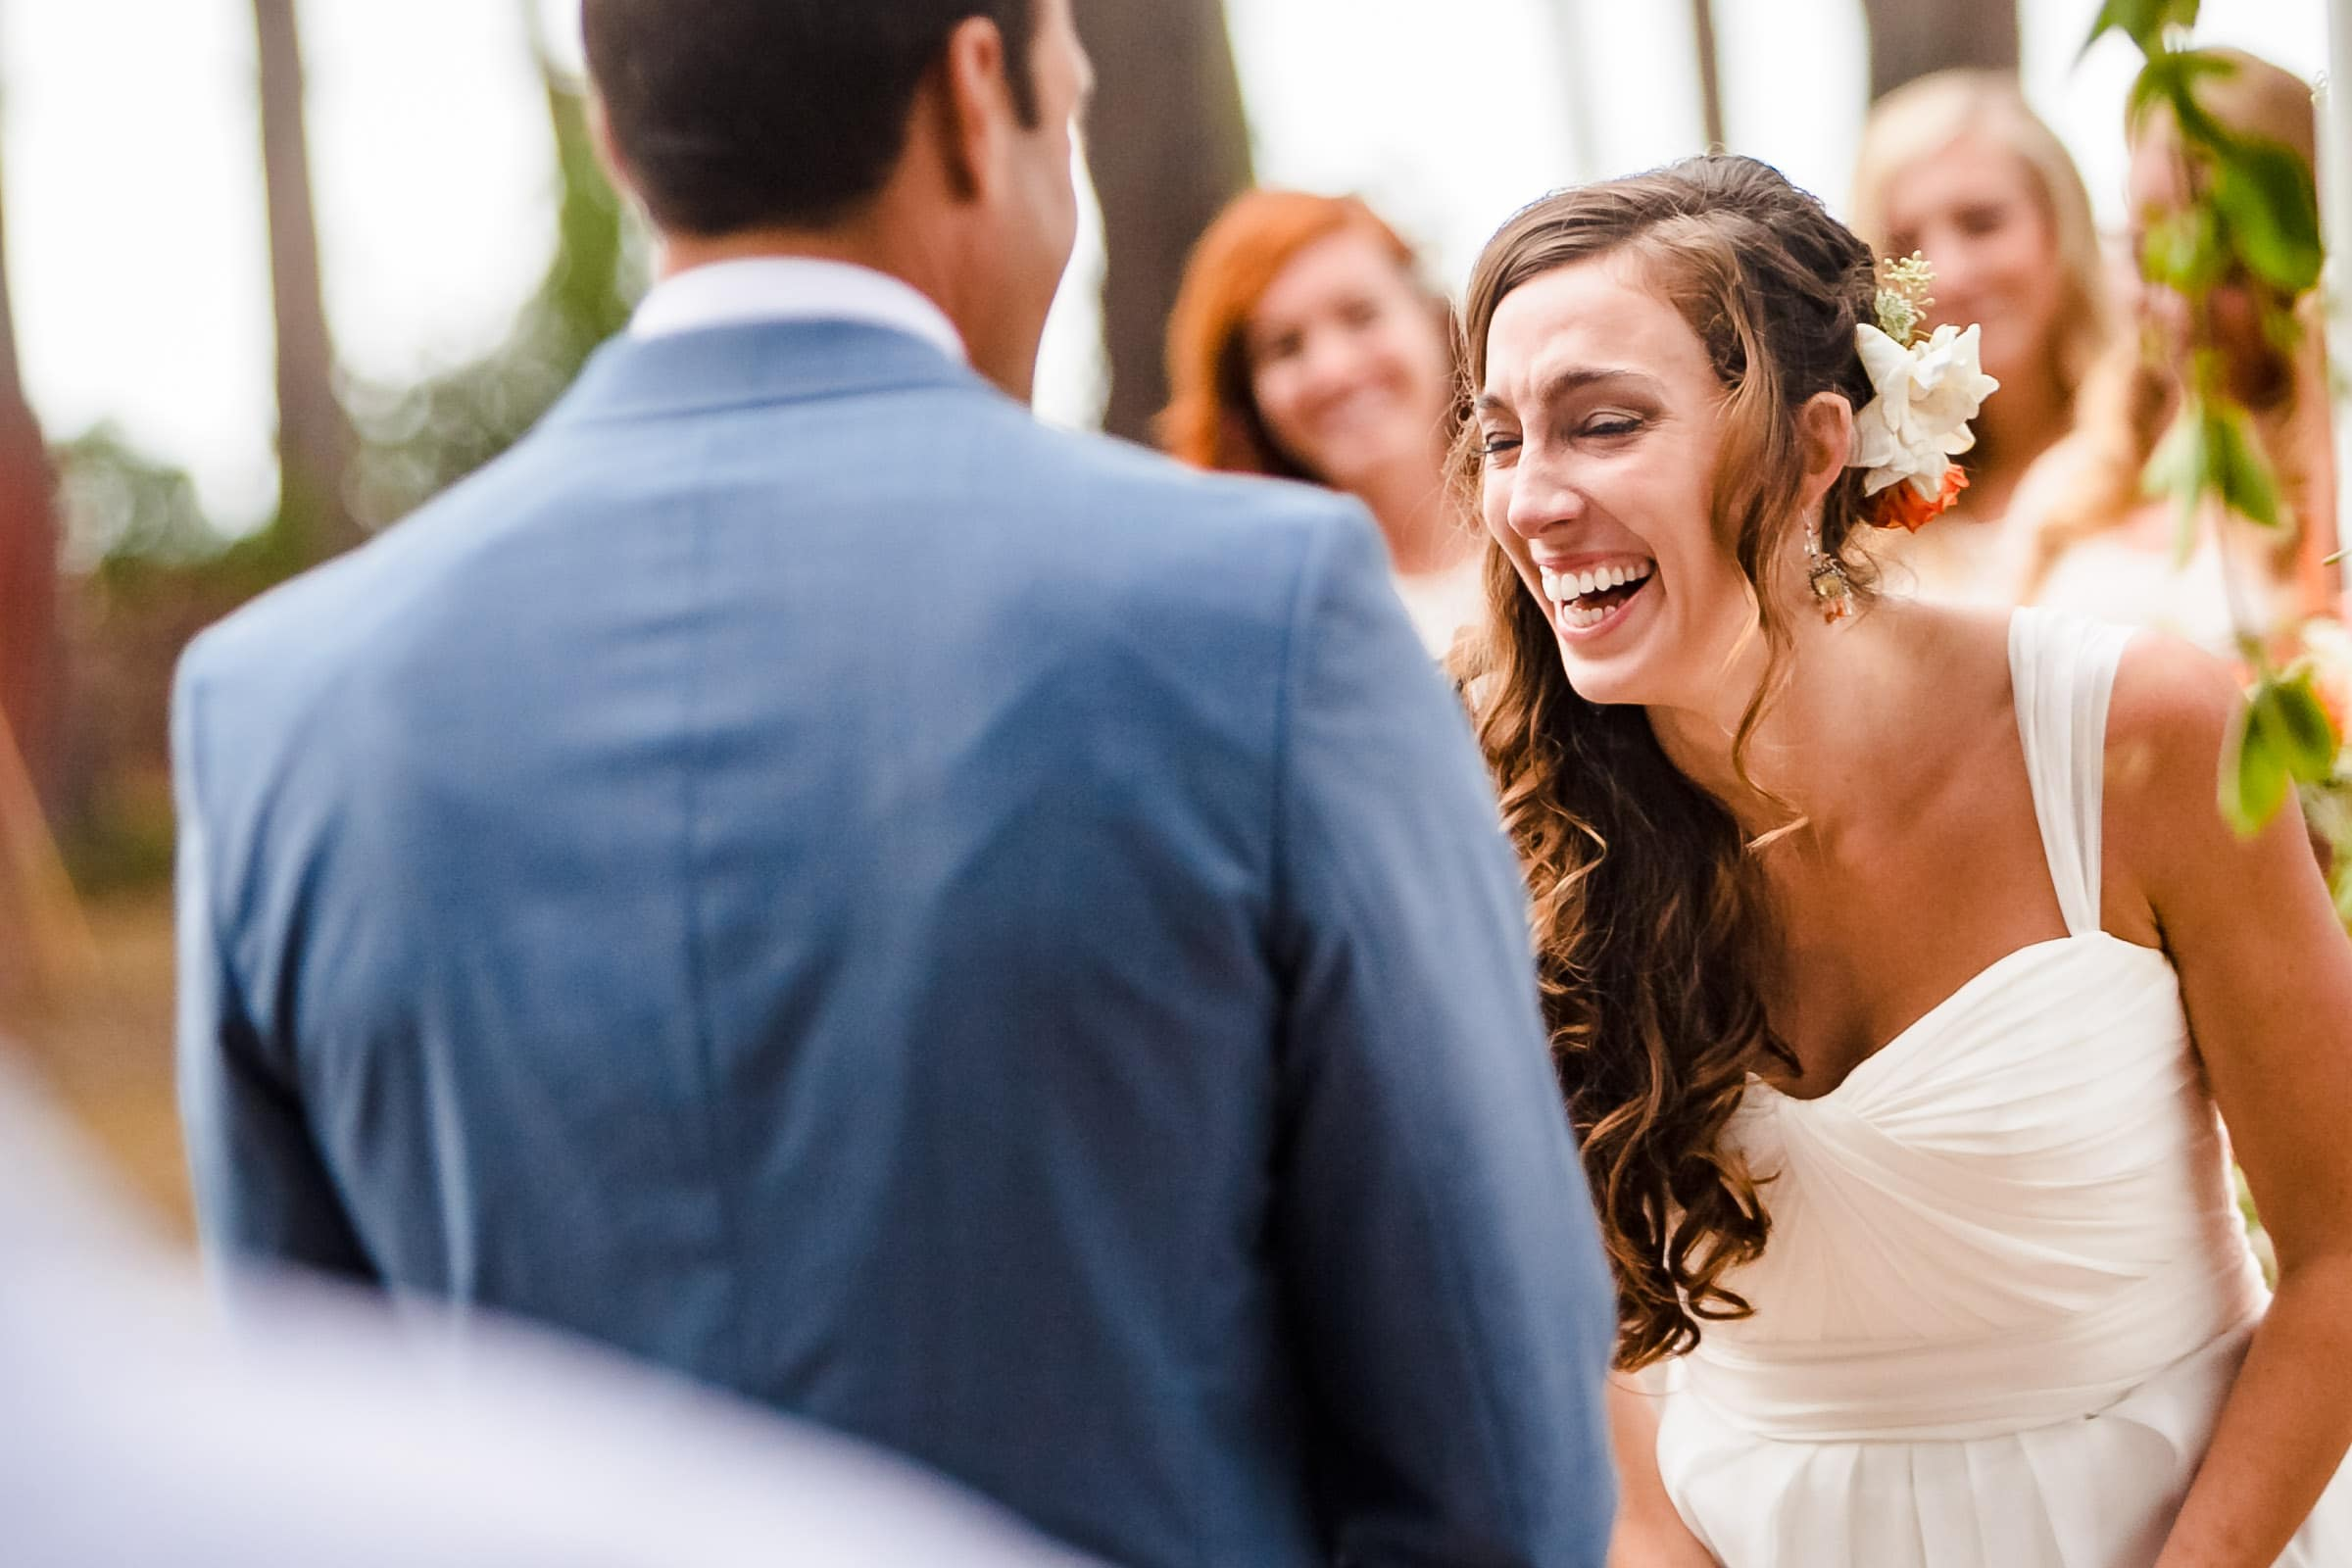 A happy and emotional bride laughing during a Mendocino Coast wedding ceremony at Spring Ranch